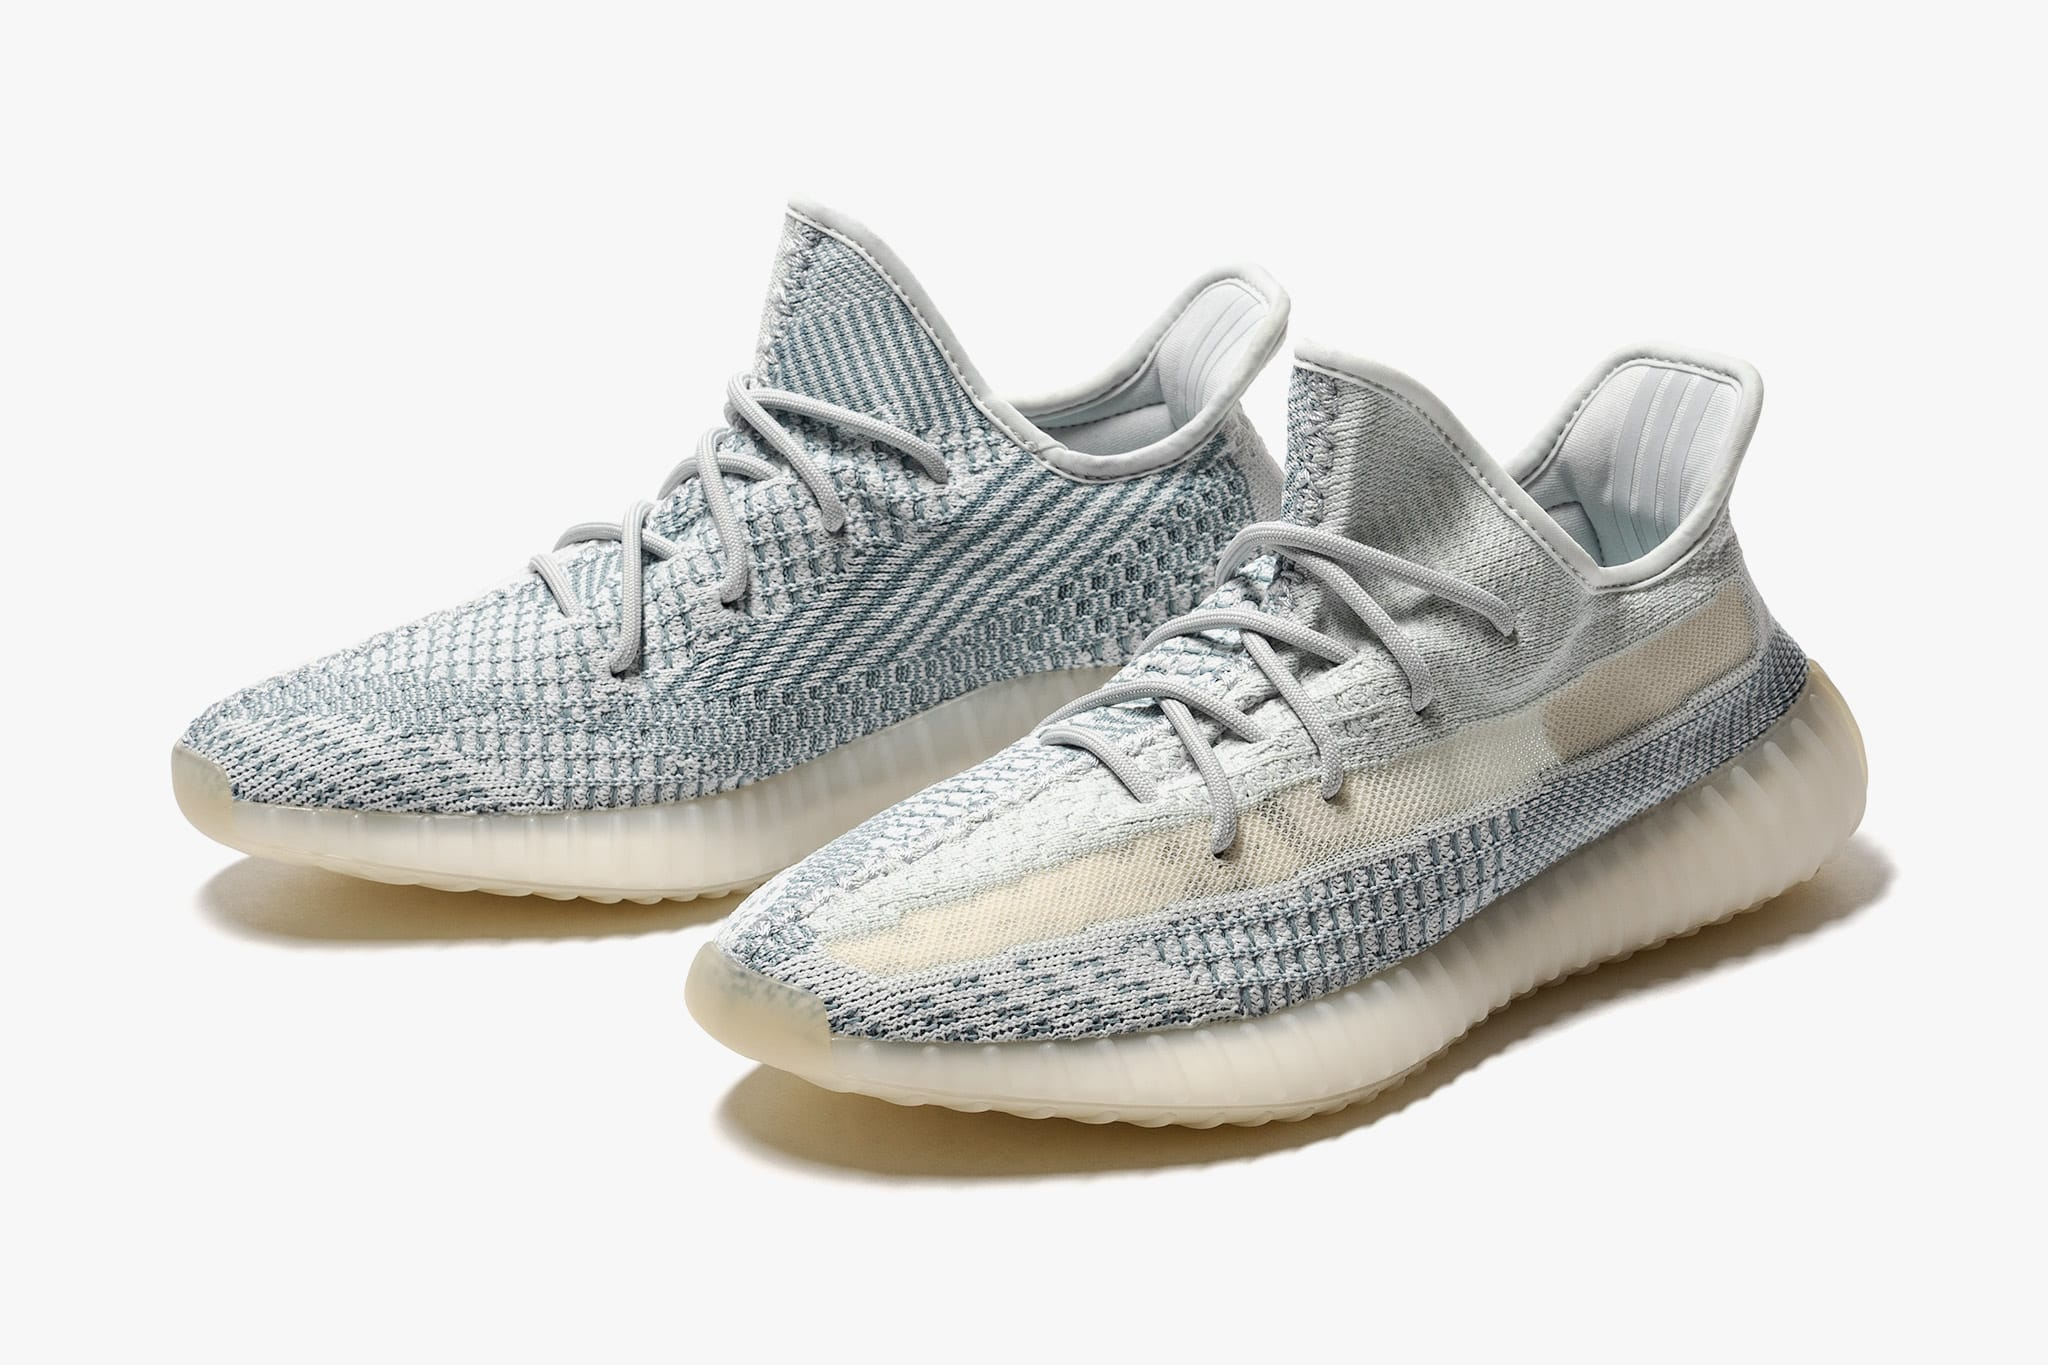 cheaper 795d0 30c63 adidas Yeezy Boost 350 V2 'Cloud' | Release Date: 09.21.19 ...